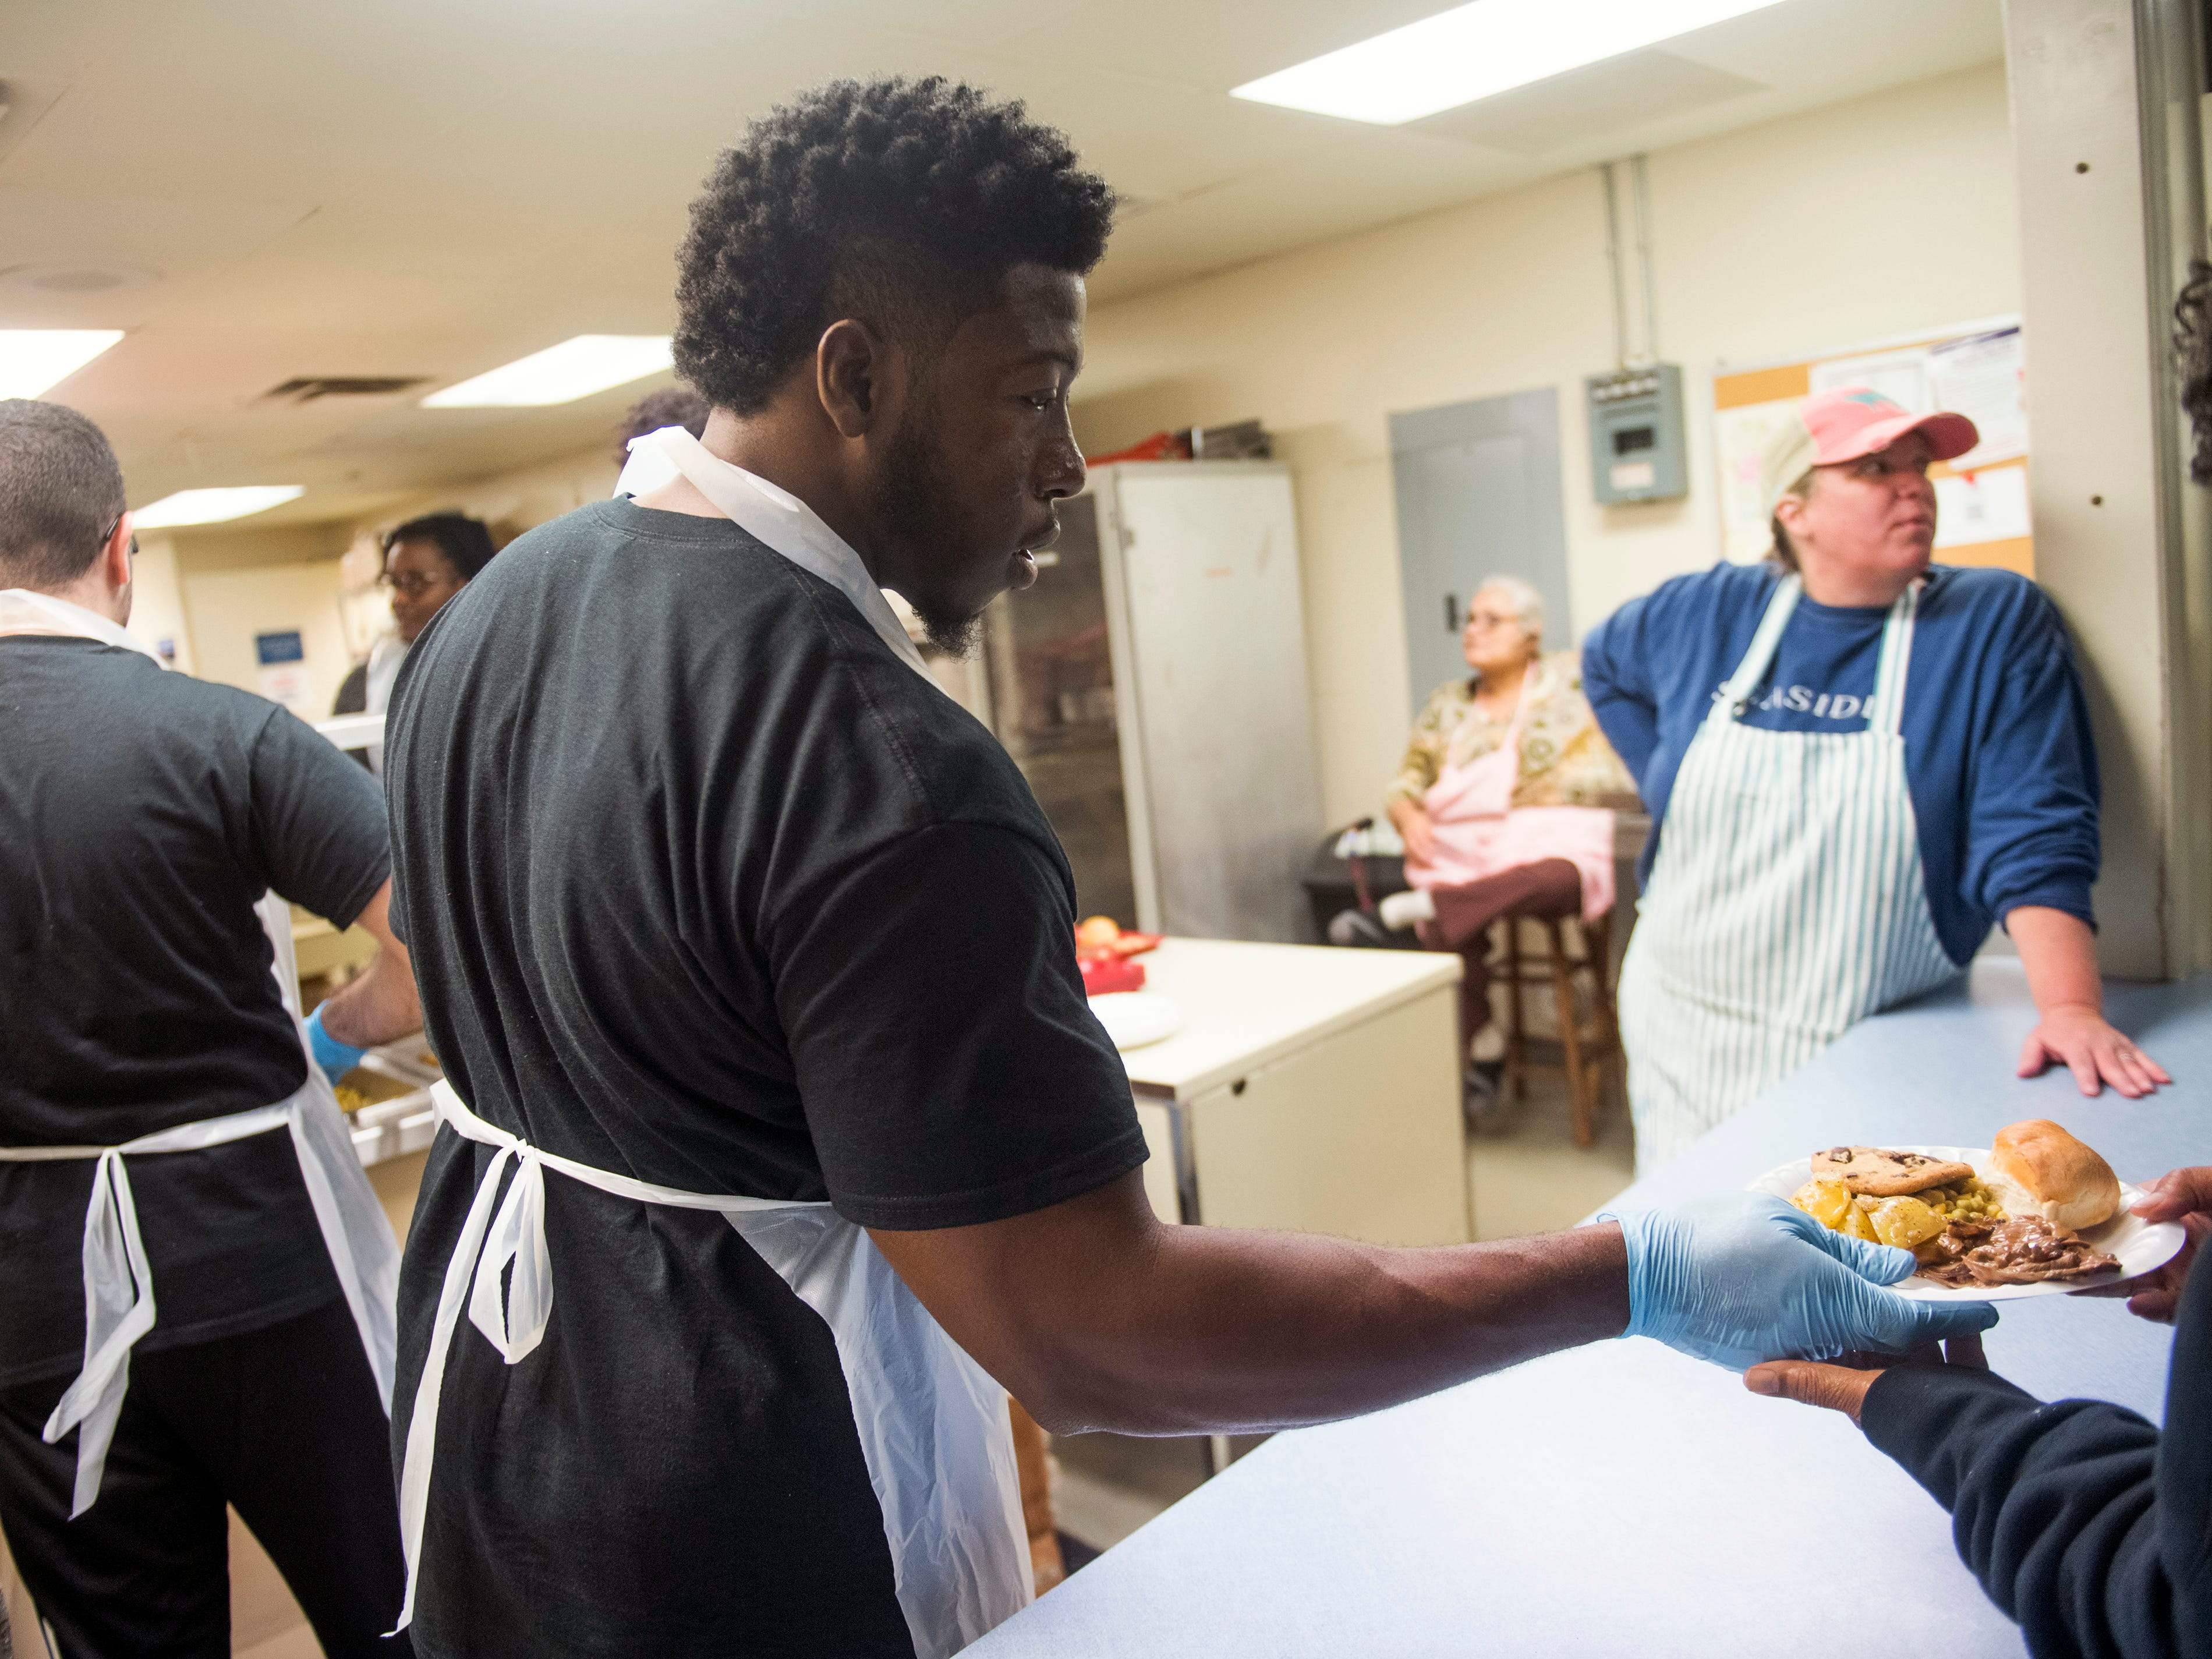 Chuck Ejimadu, a Phi Delta Epsilon medical fraternity member from Ross University School of Medicine, hands out a plate of food at The Love Kitchen in Knoxville on Wednesday, November 14, 2018.